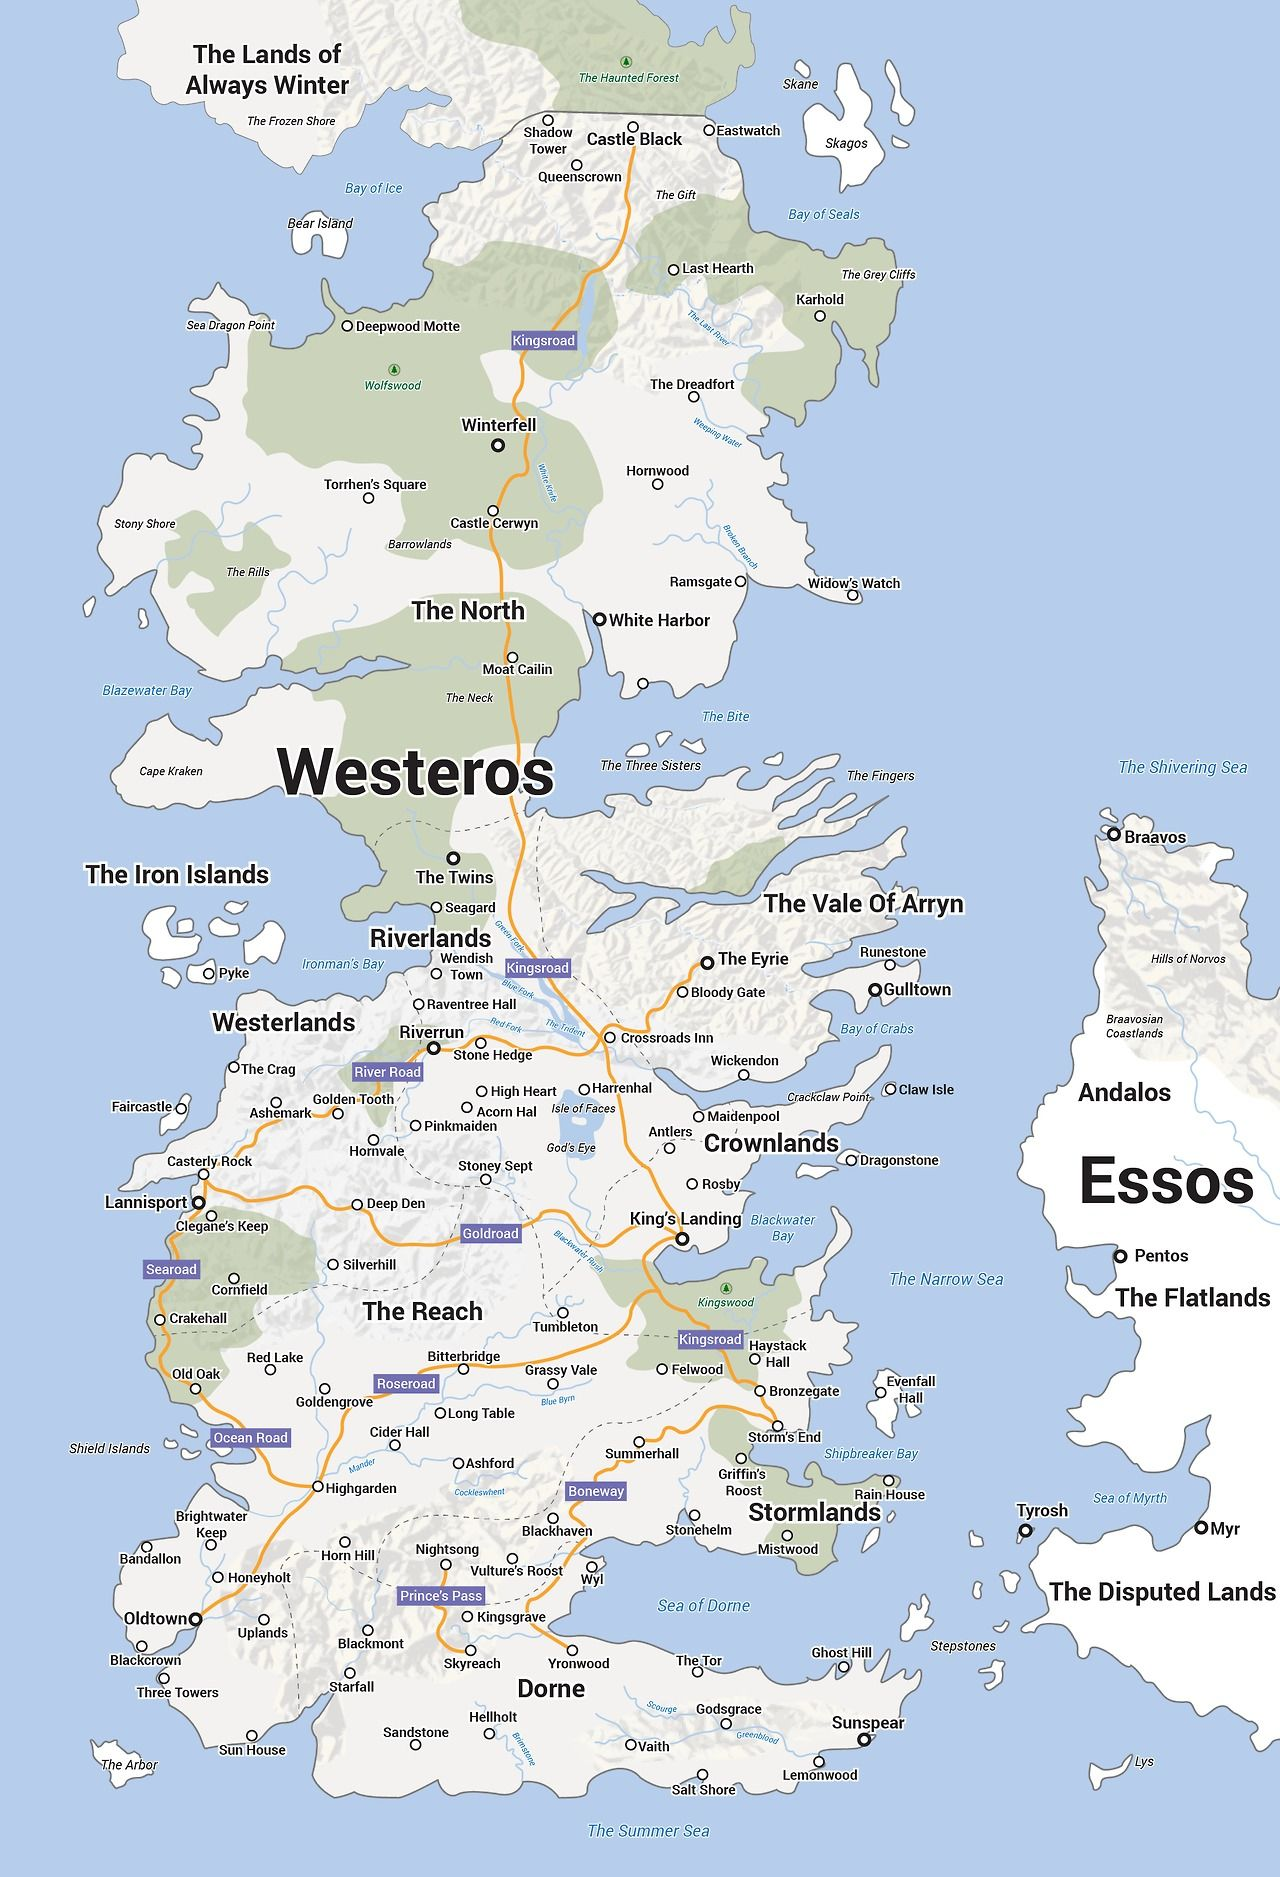 A Map Of Westeros From A Game Of Thrones In The Style Of Google